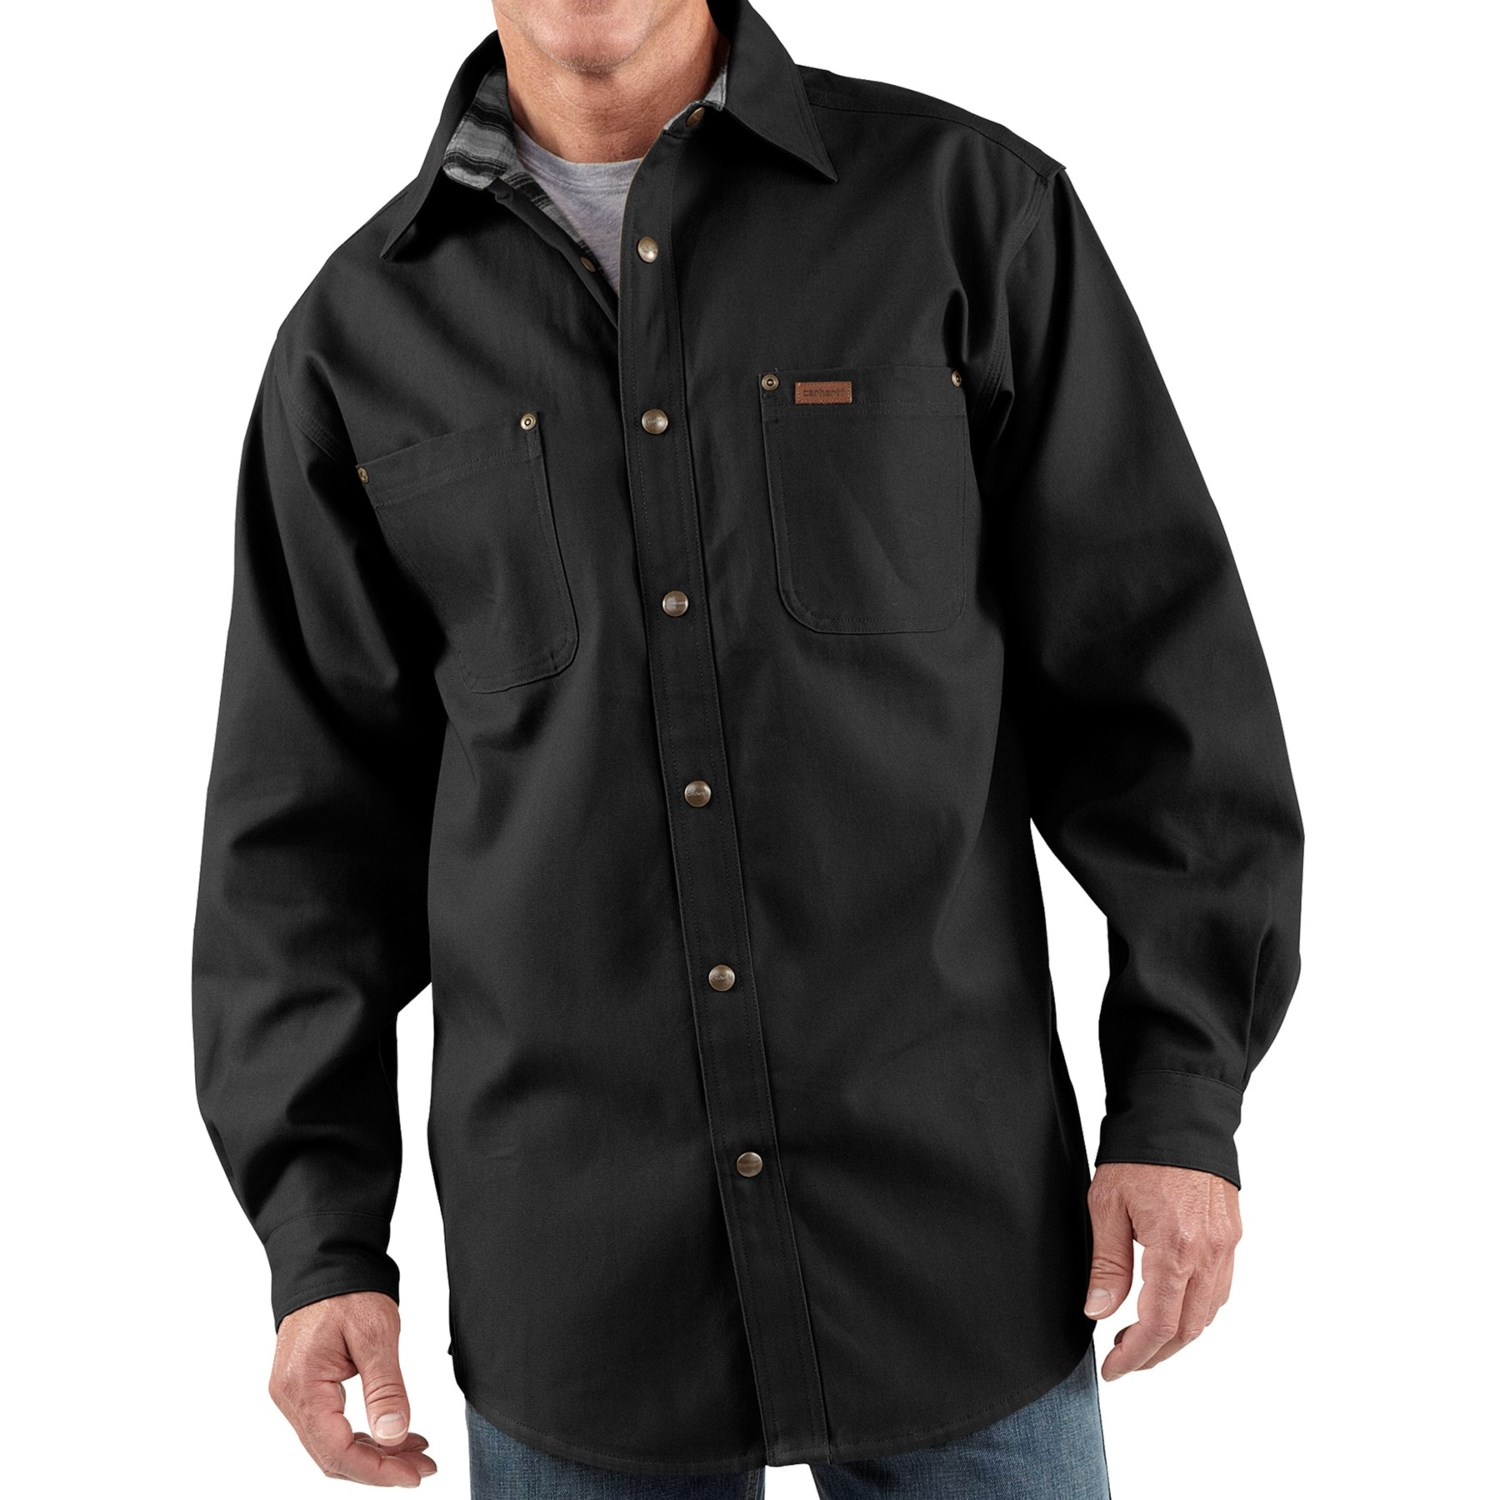 carhartt canvas shirt jacket for tall men 4037d